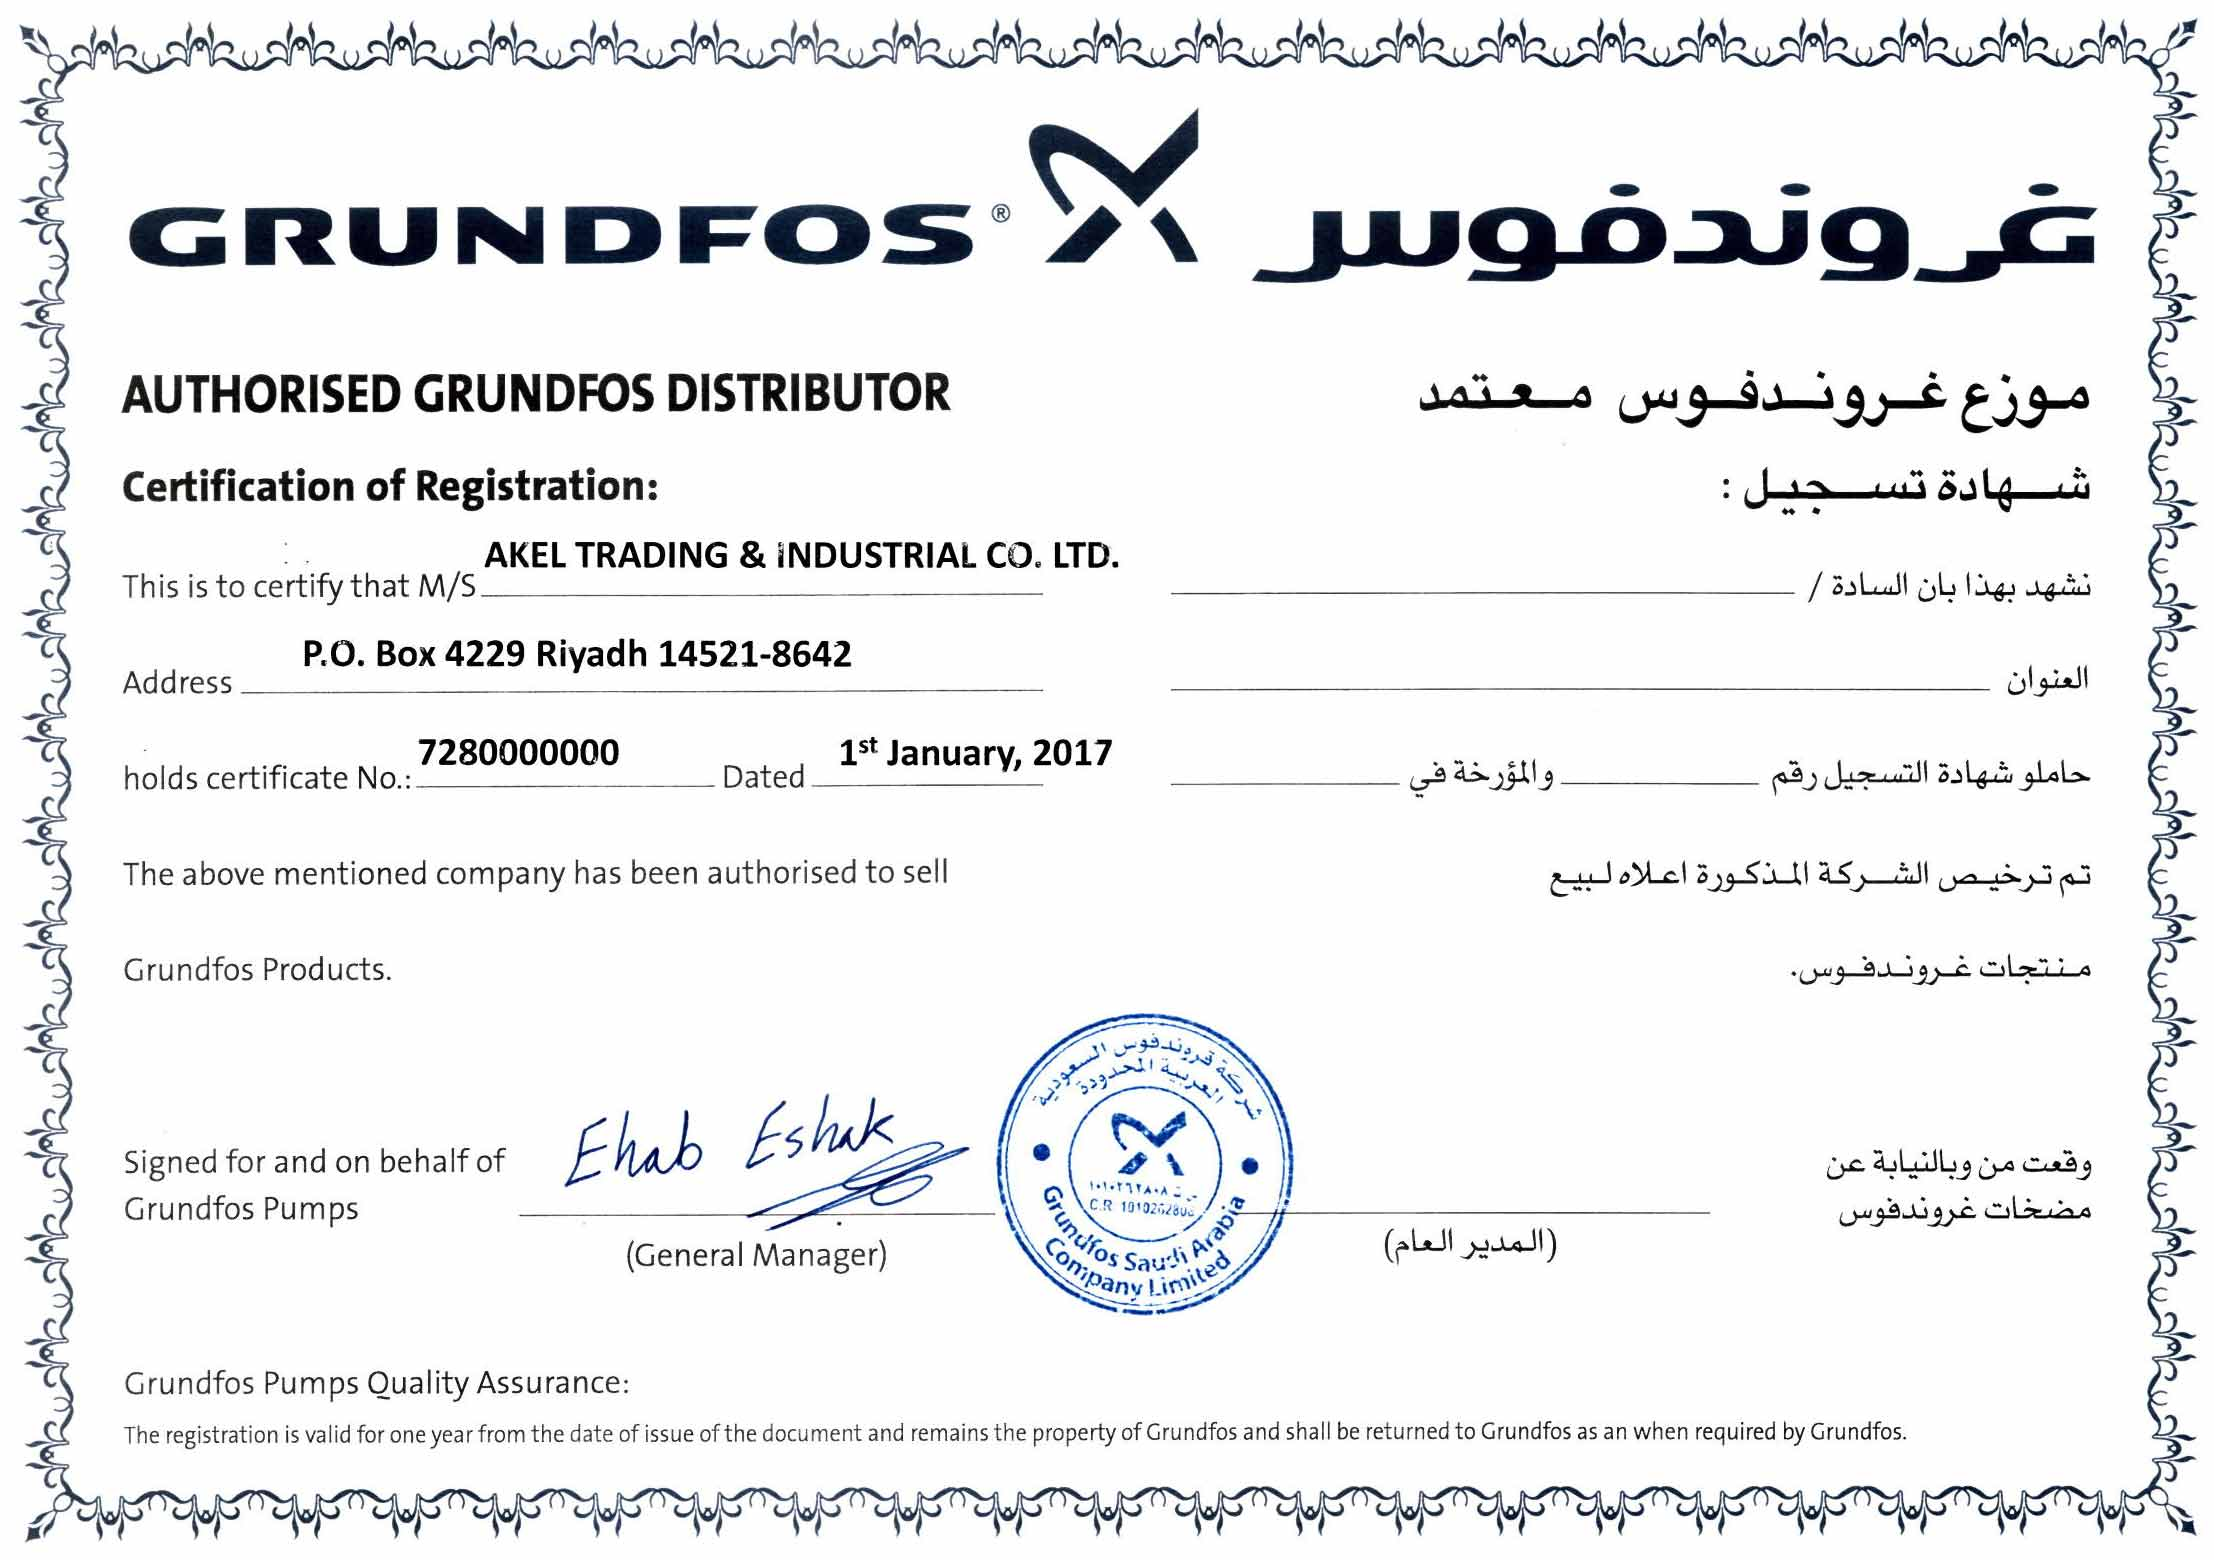 Authorized Distributor of GRUNDFOS